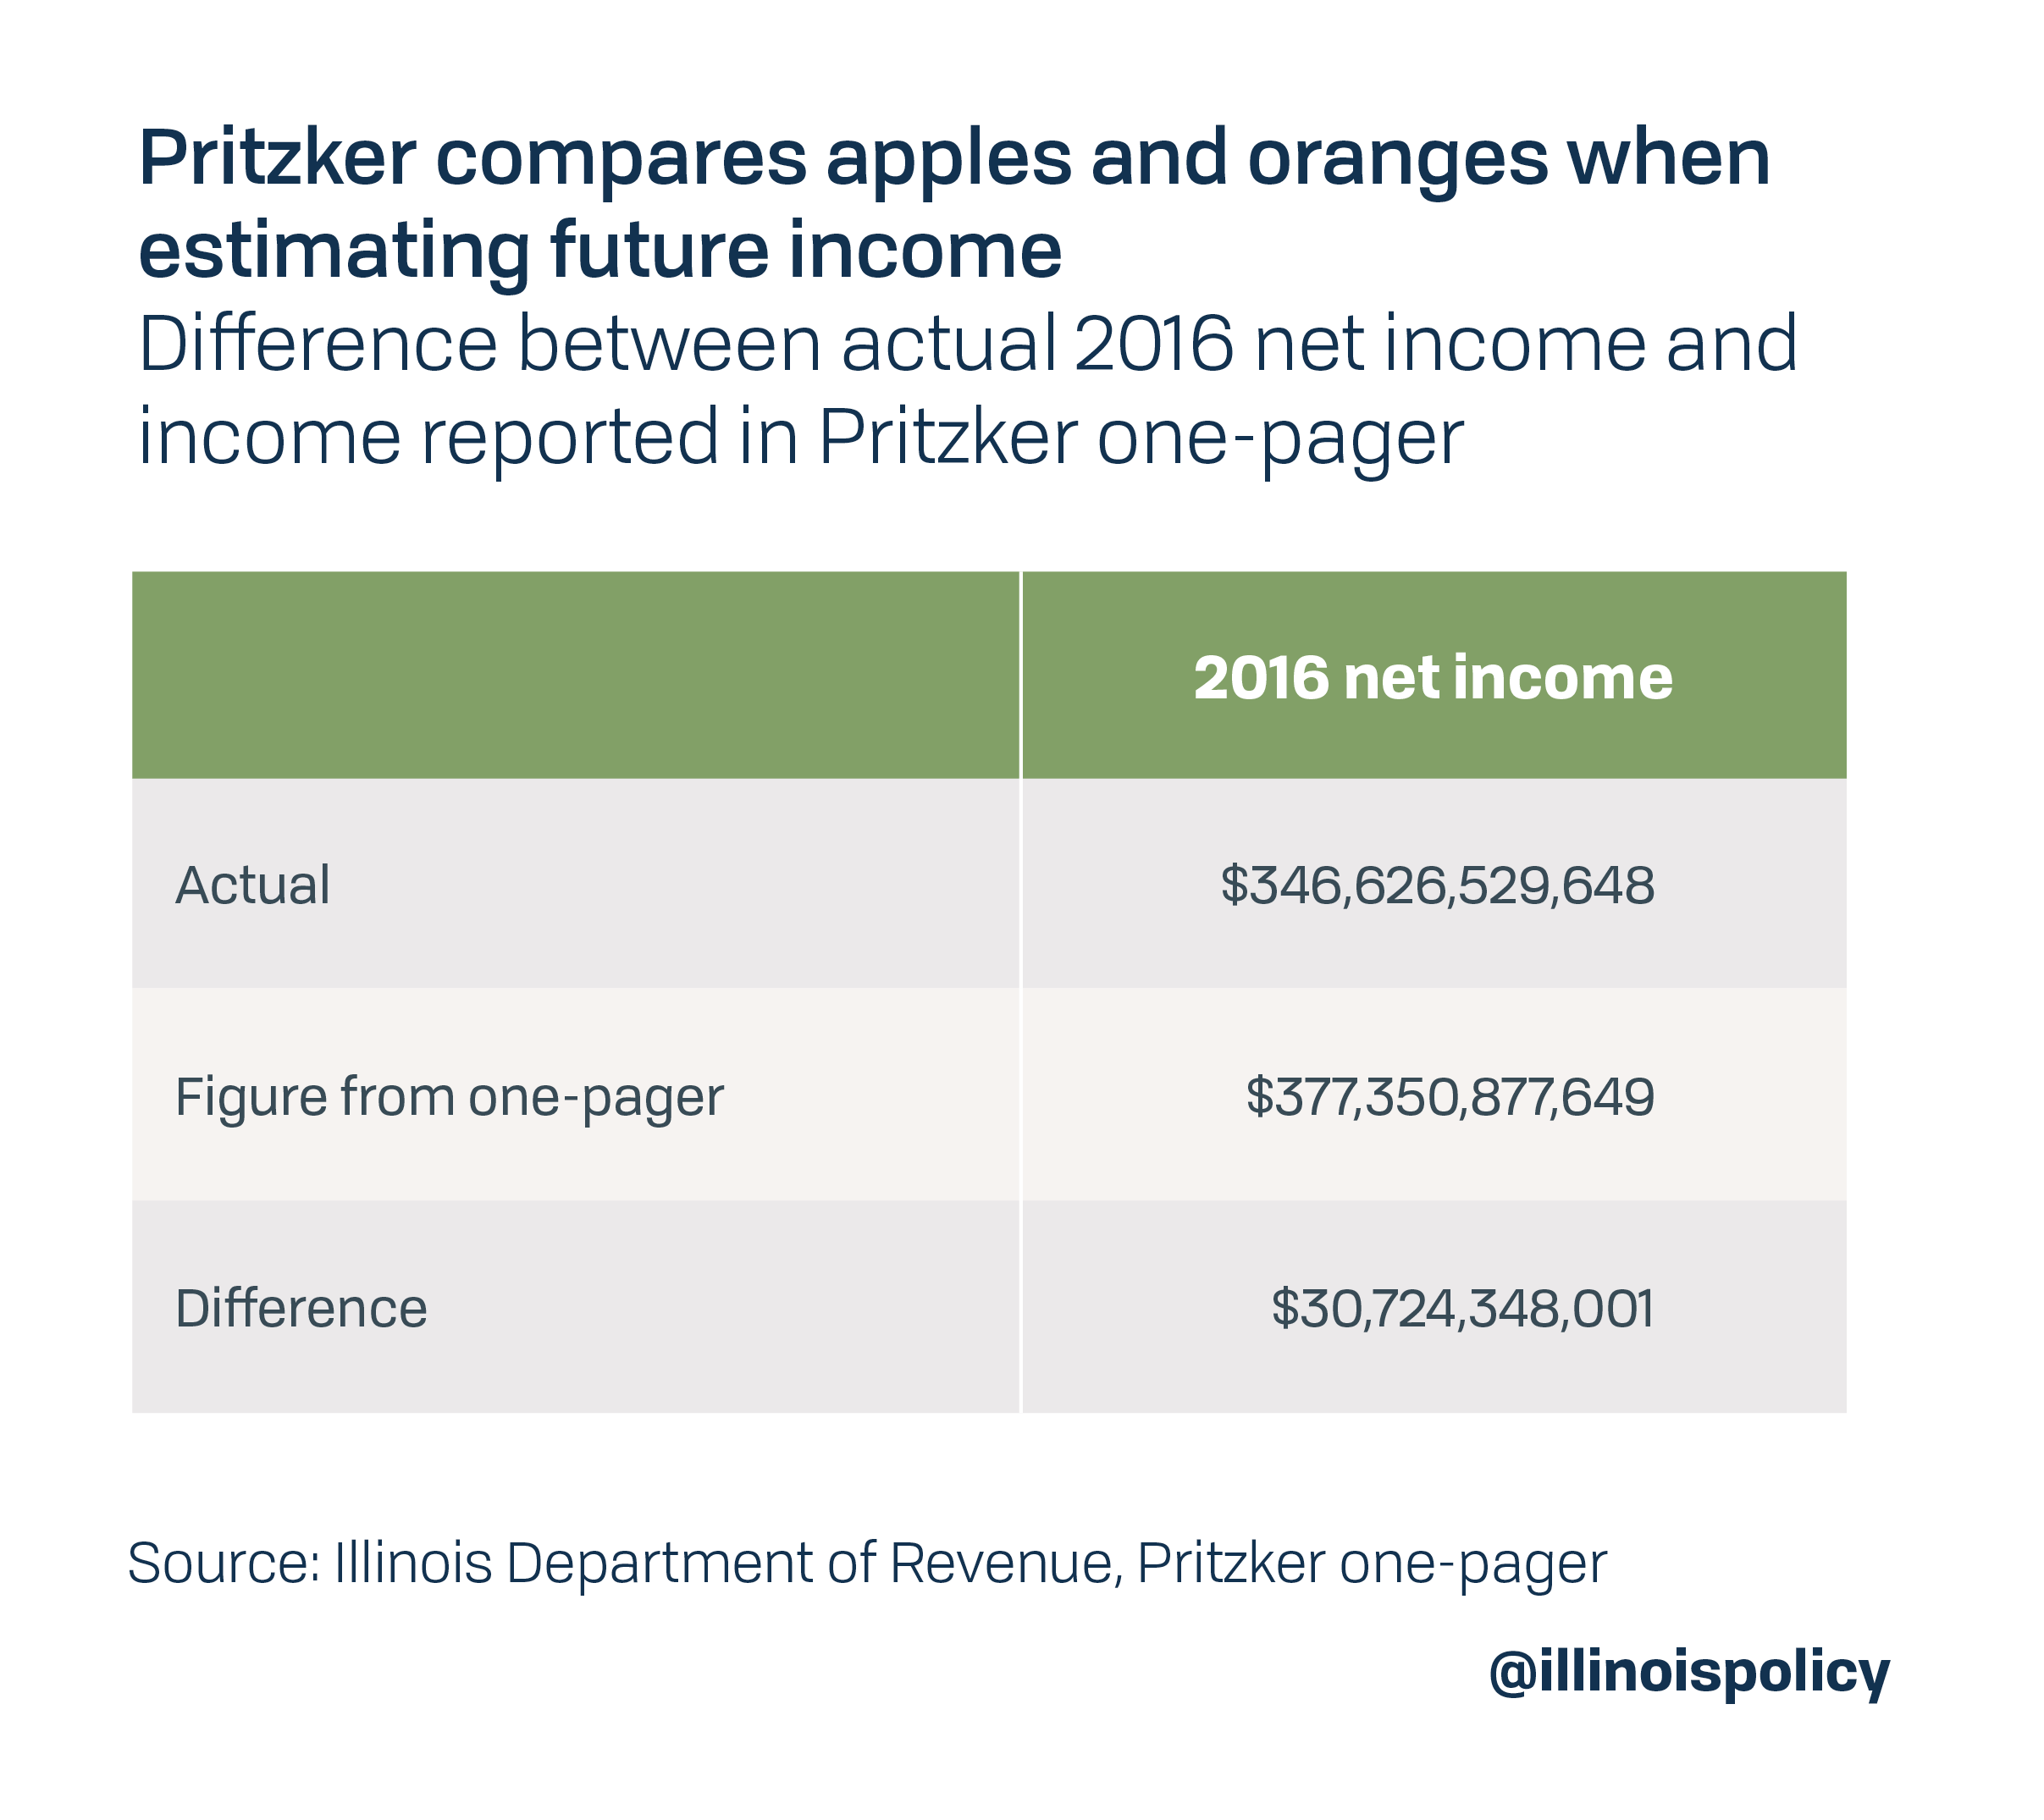 Pritzker compares apples and oranges when estimating future income